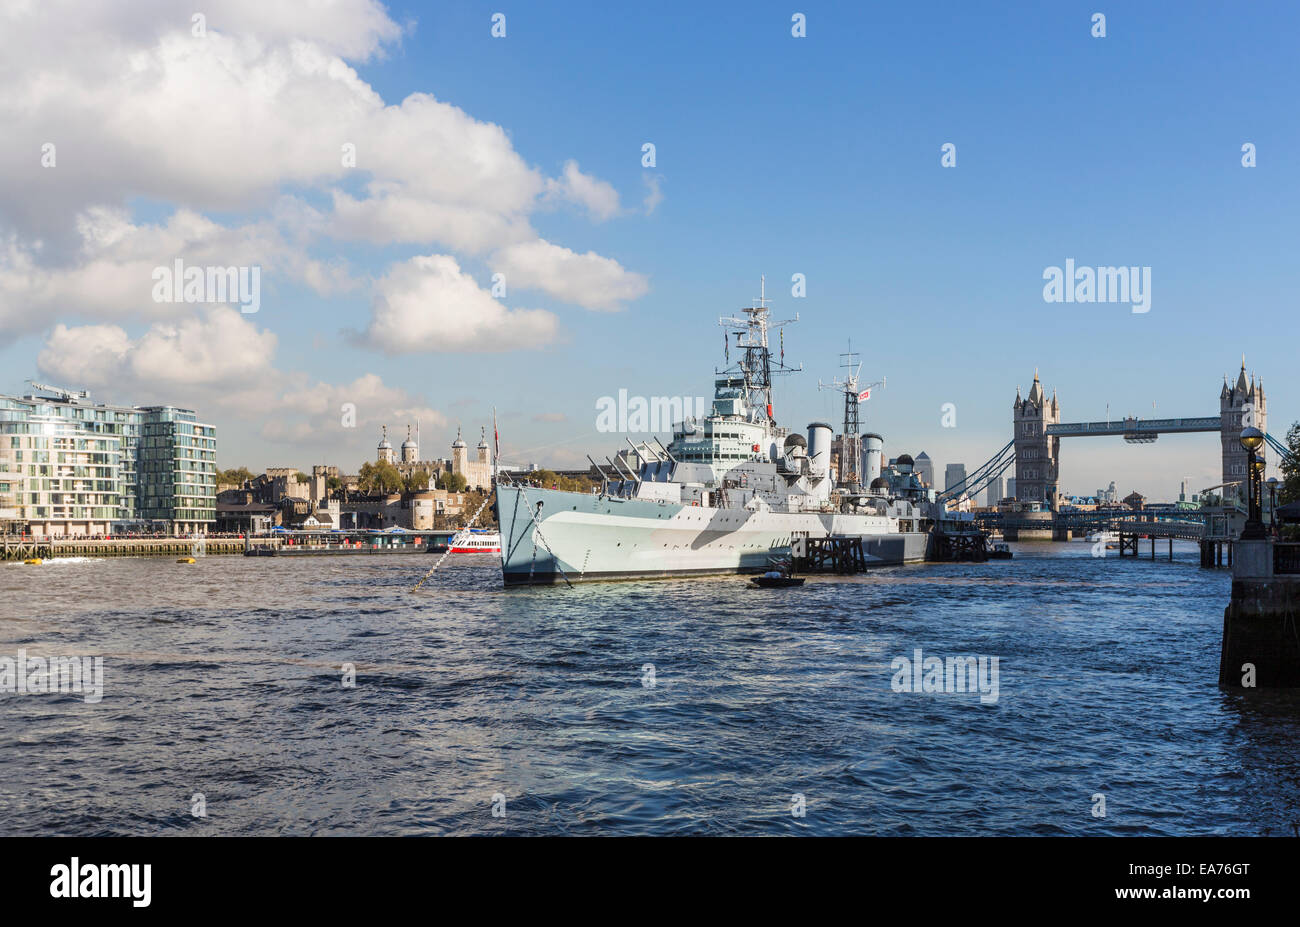 HMS Belfast, the iconic WWII cruiser moored at Queen's Walk on the River Thames, London, now a popular museum - Stock Image